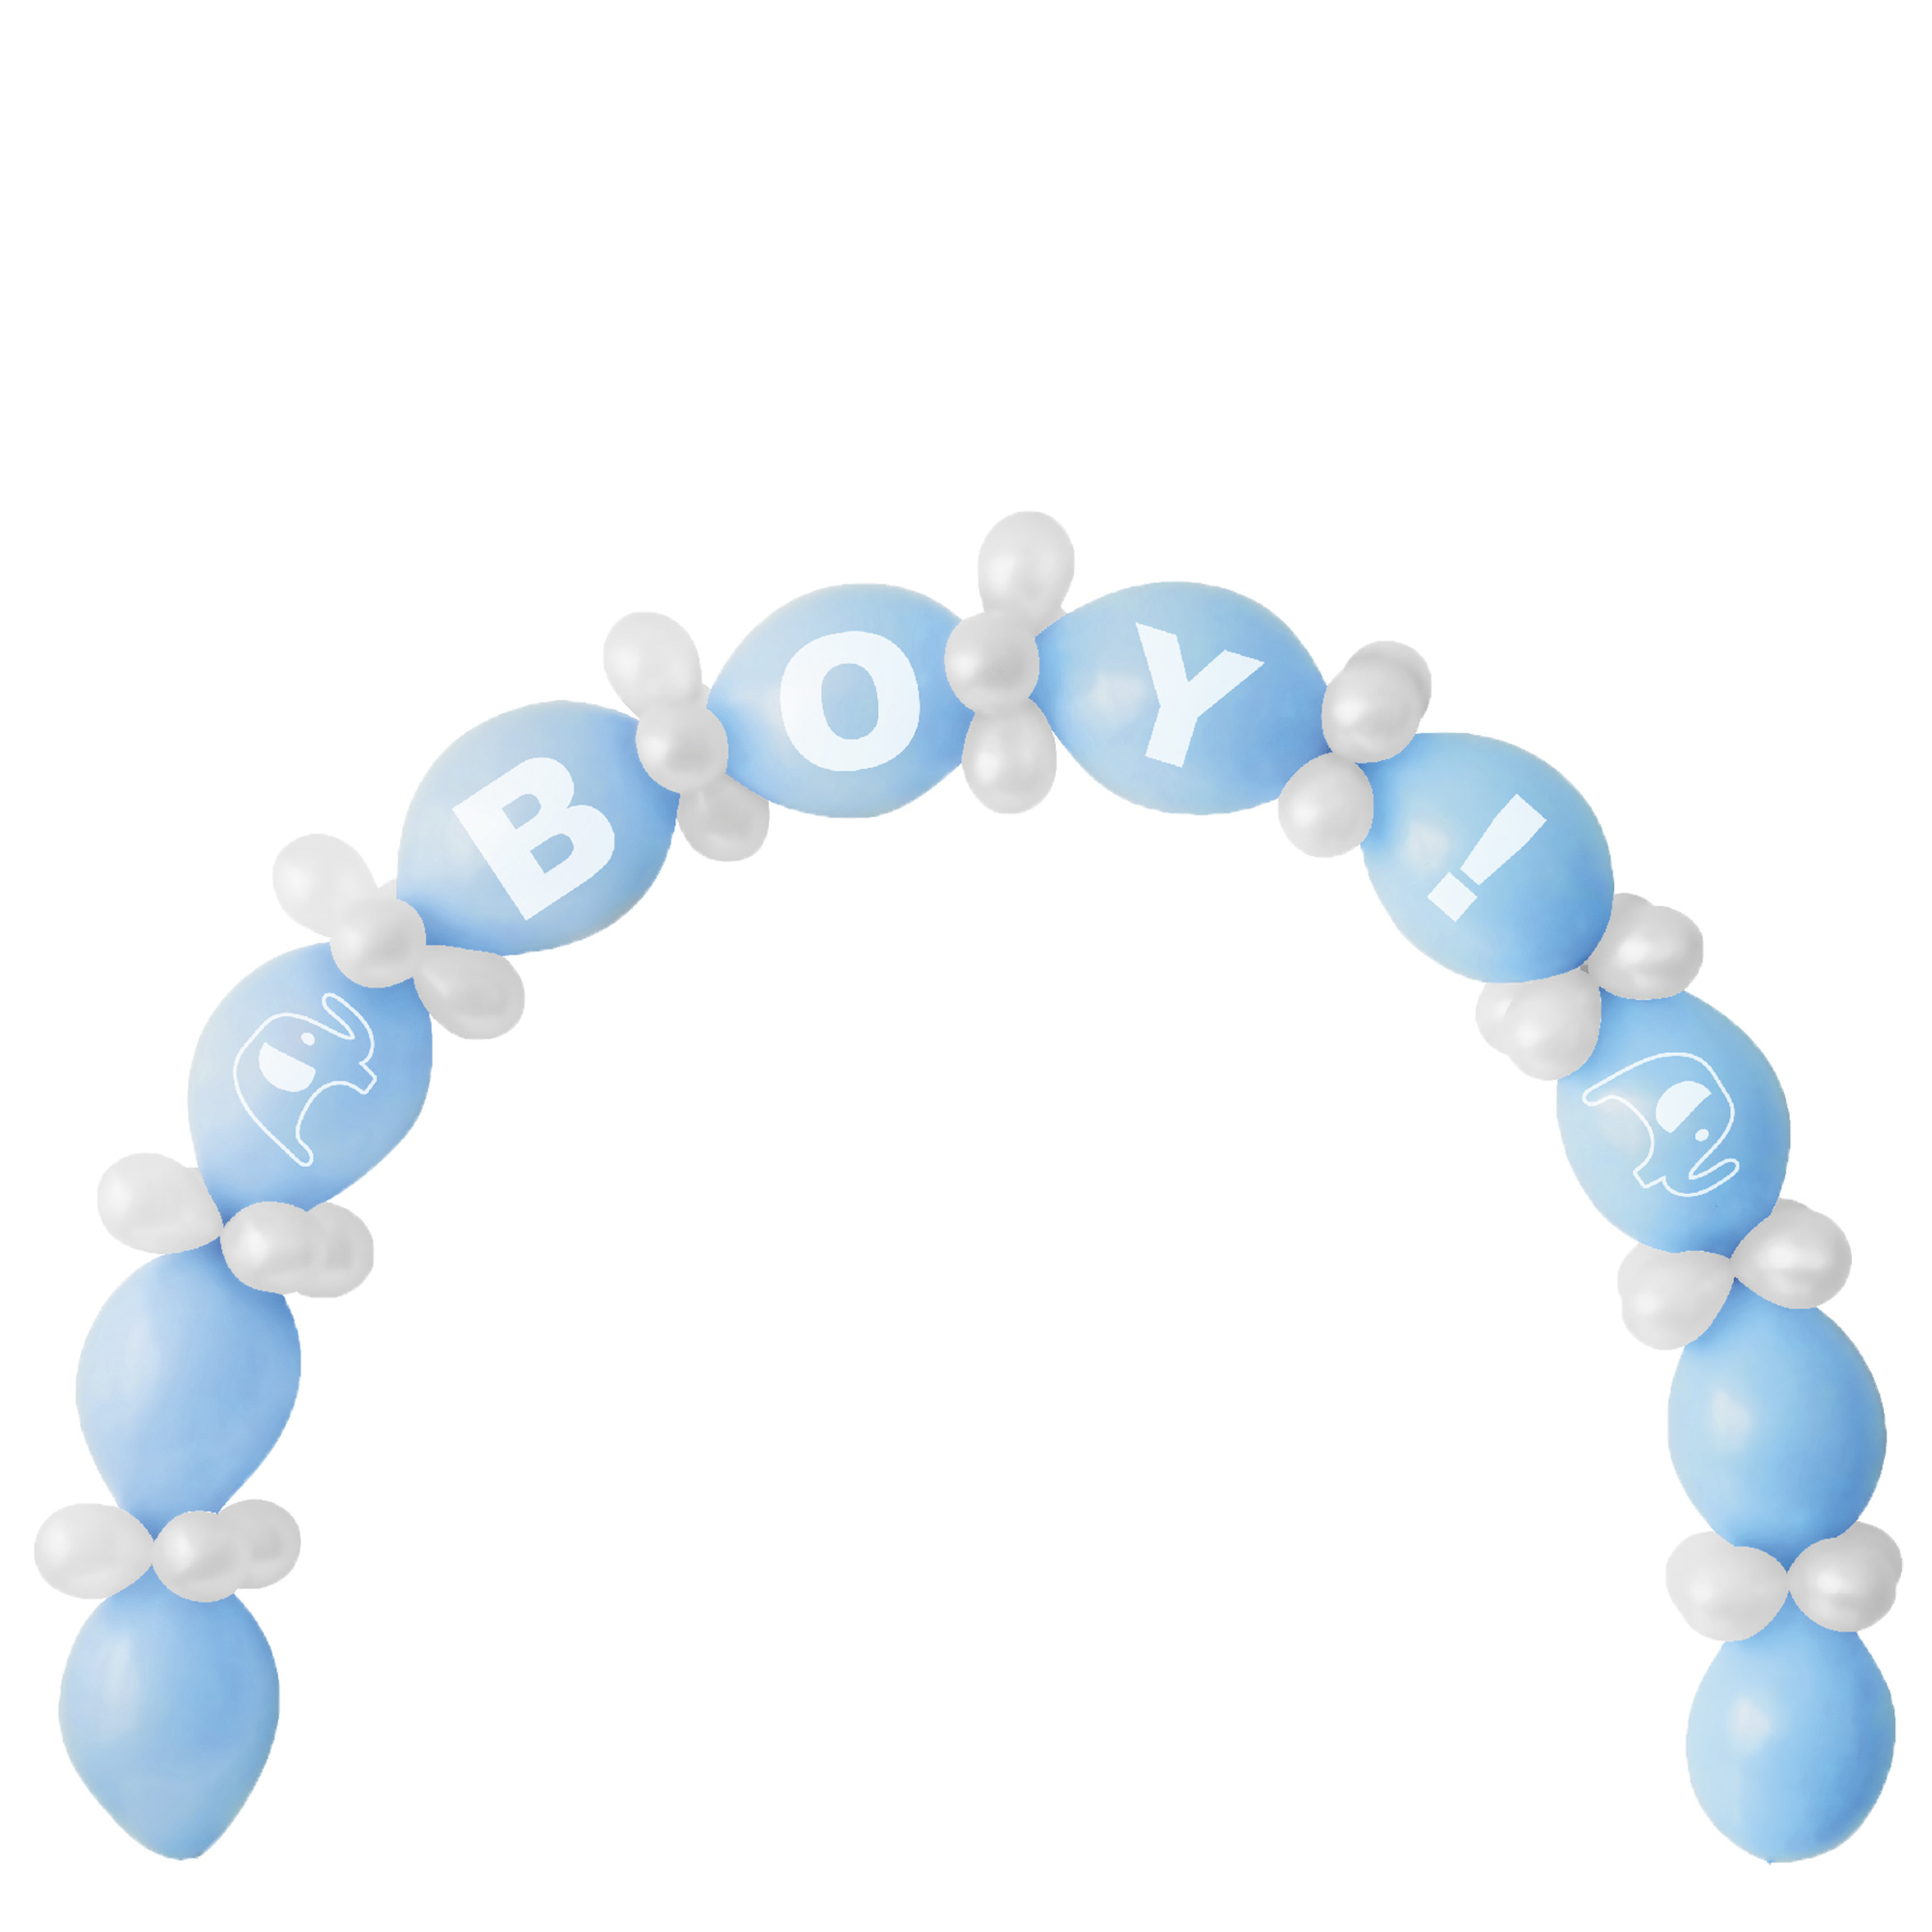 Blue Baby Shower Balloon Chain & Figures Kit - 64 Balloons